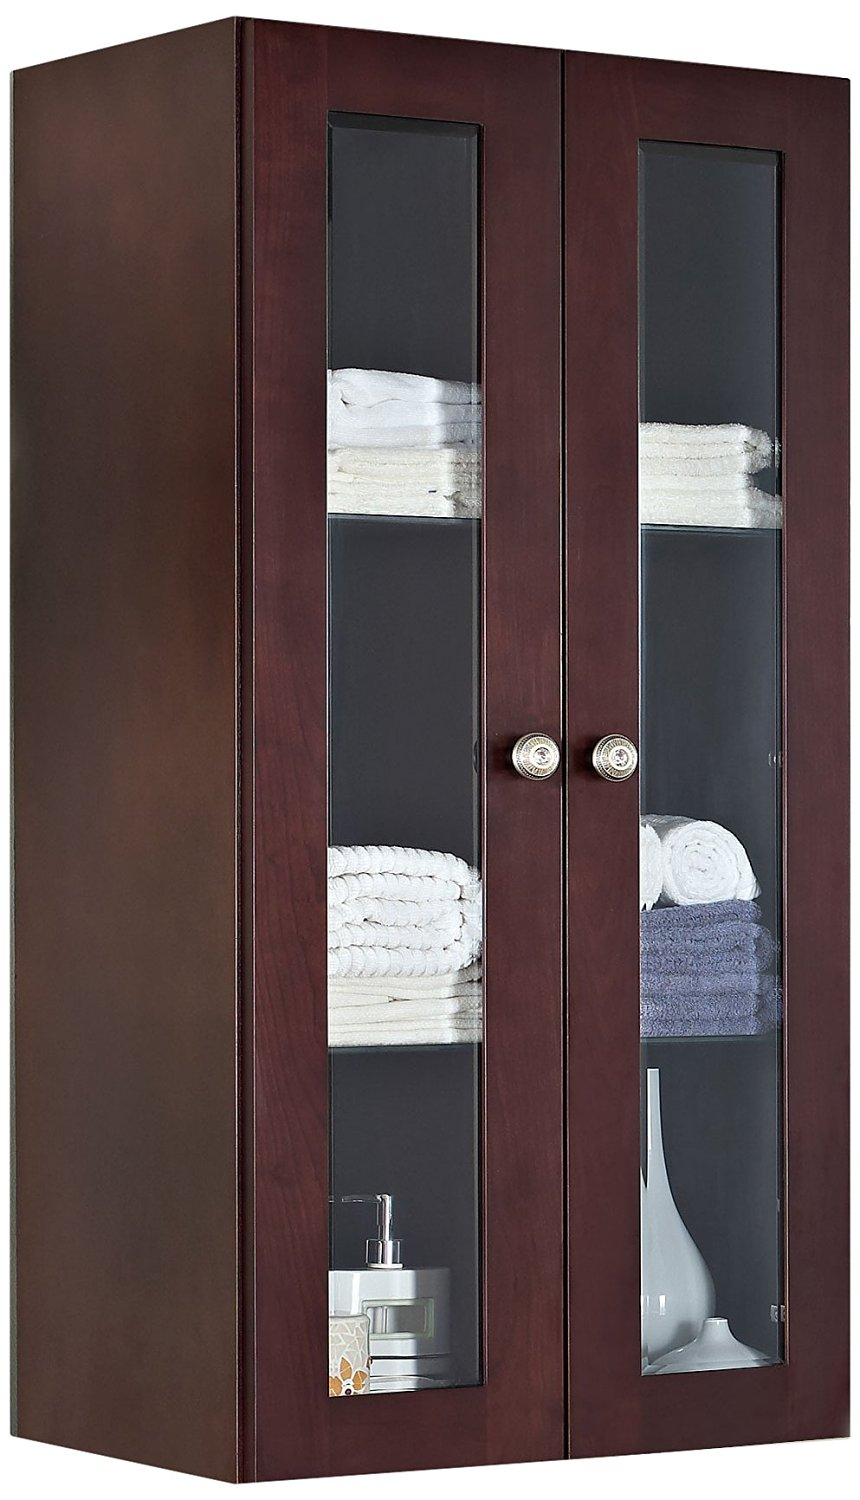 American Imaginations 715 24-Inch X 48-Inch Solid Cherry Wood Reversible Door Wall Linen Cabinet, Coffee Finish